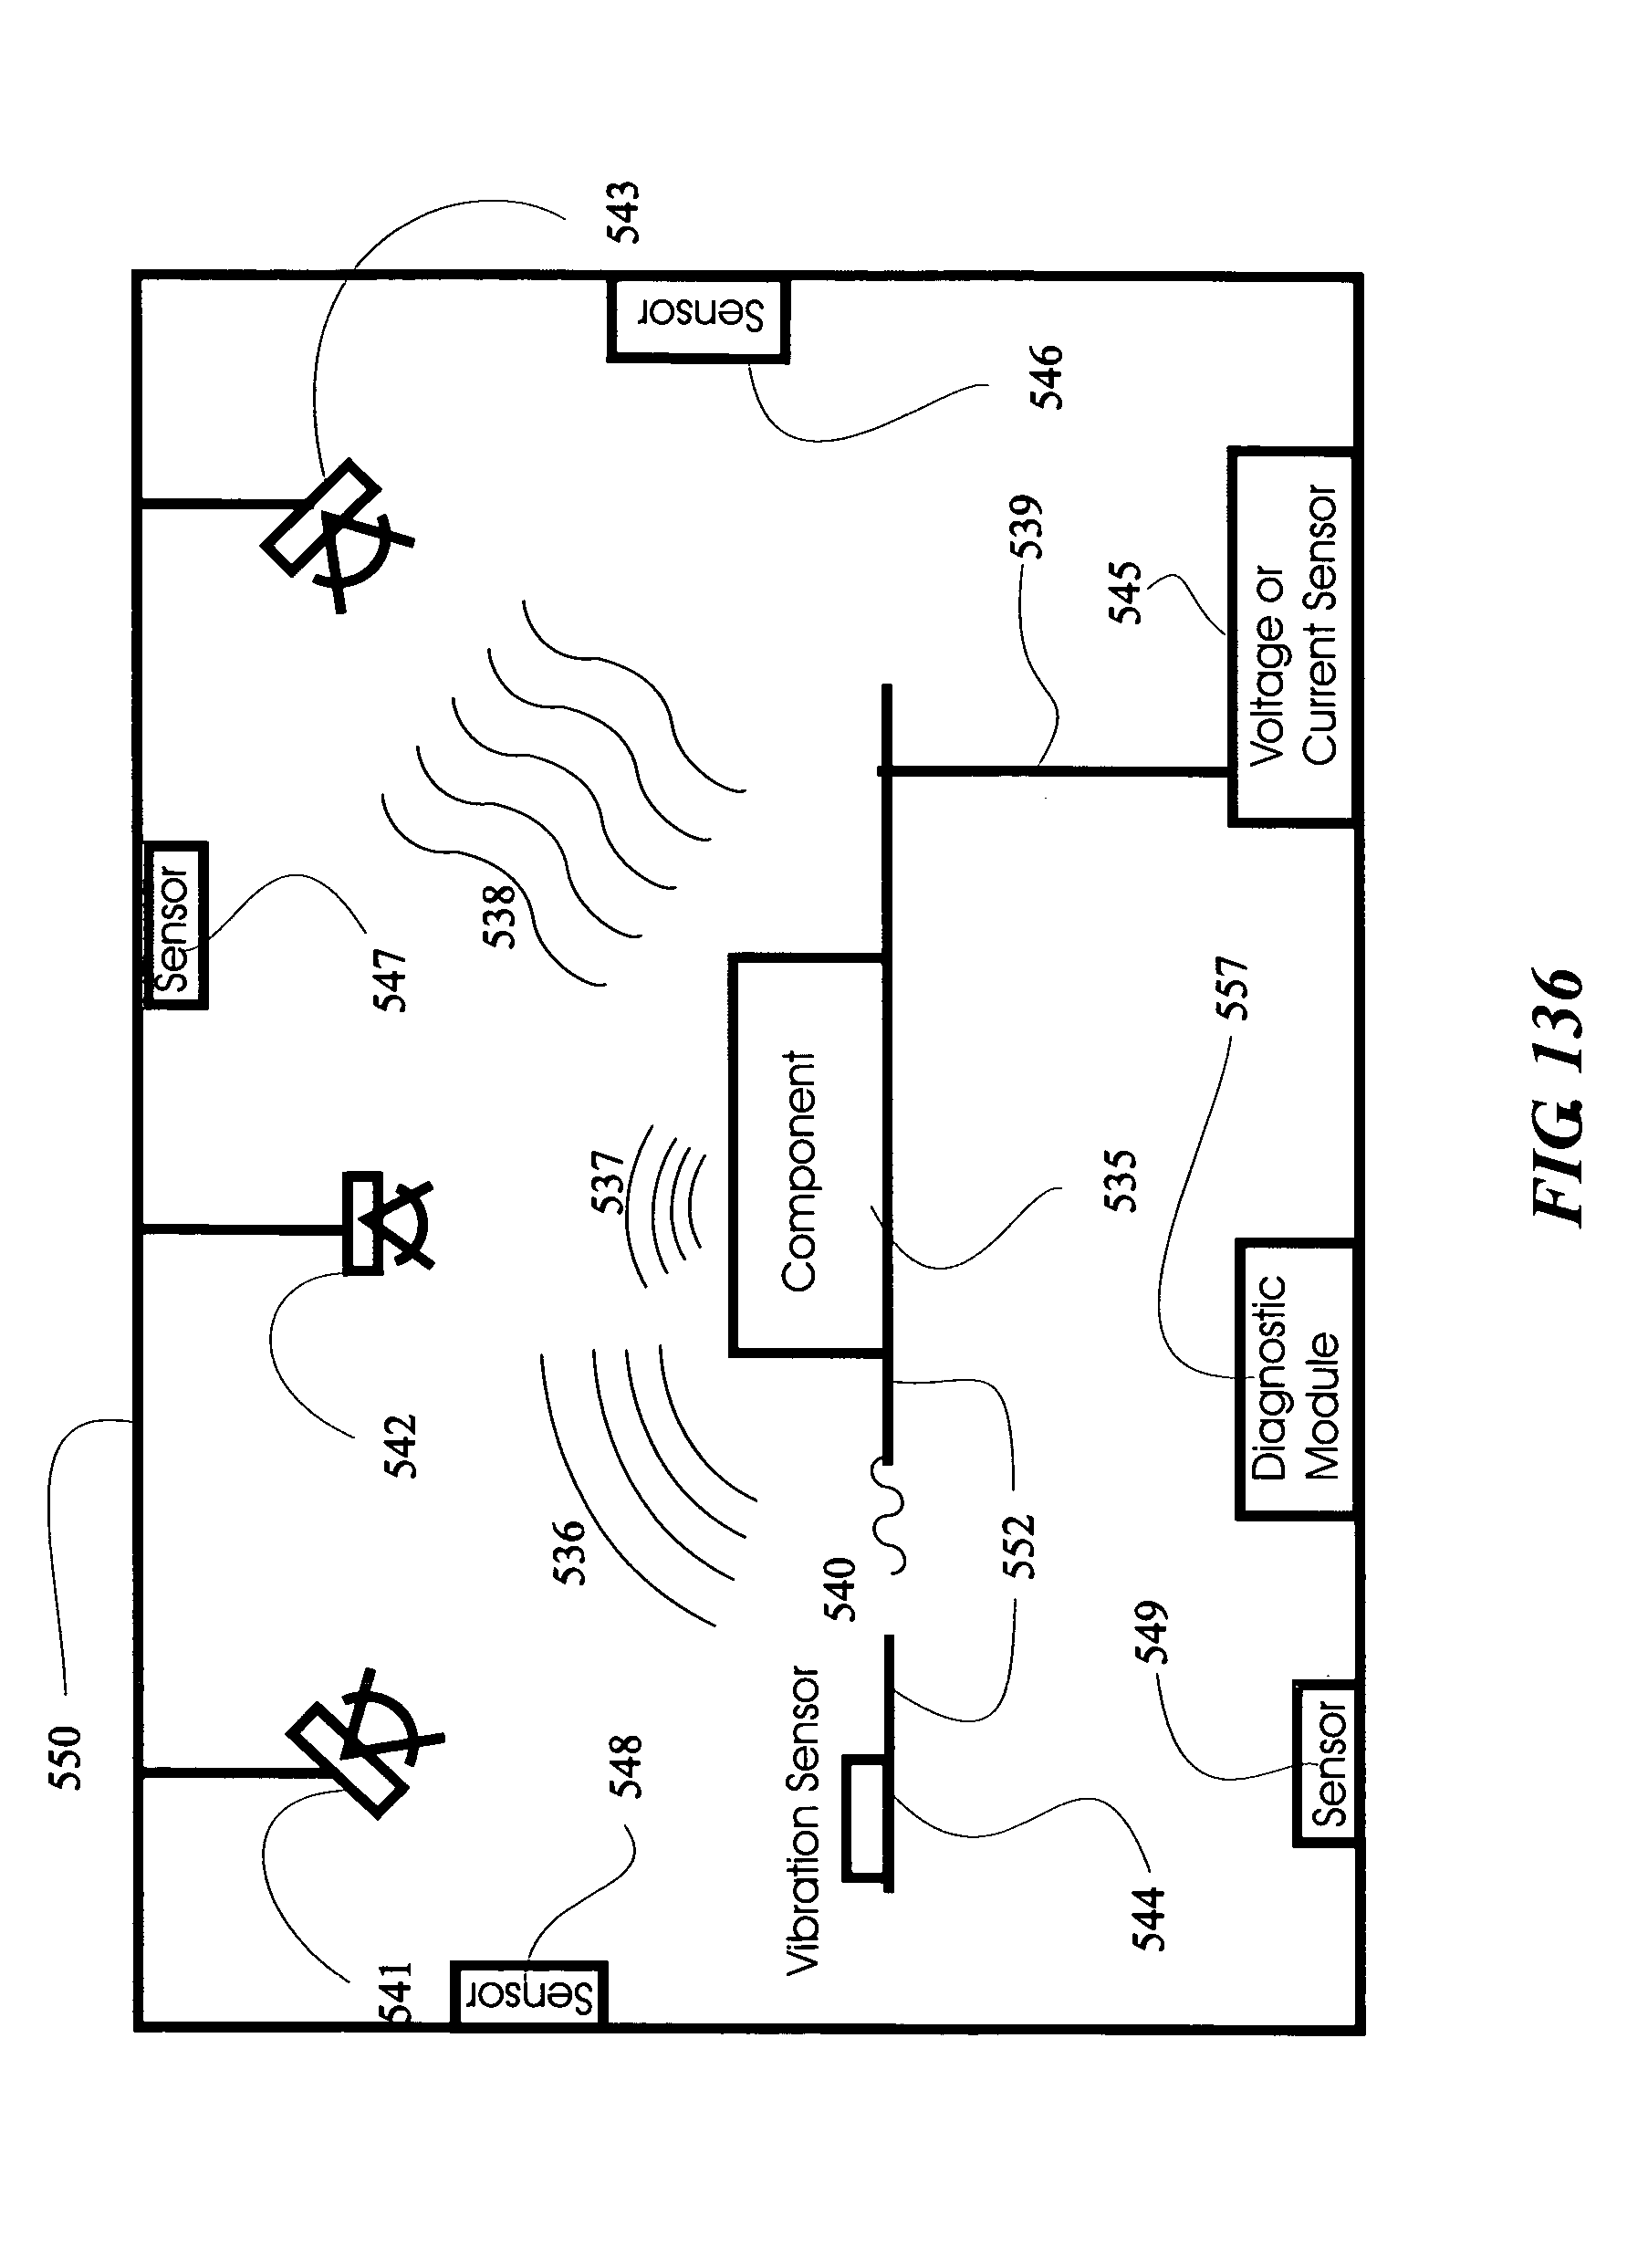 Patent Us 7164117 B2 Infraredled Based Wireless Data Voice Communication With Circuit Images